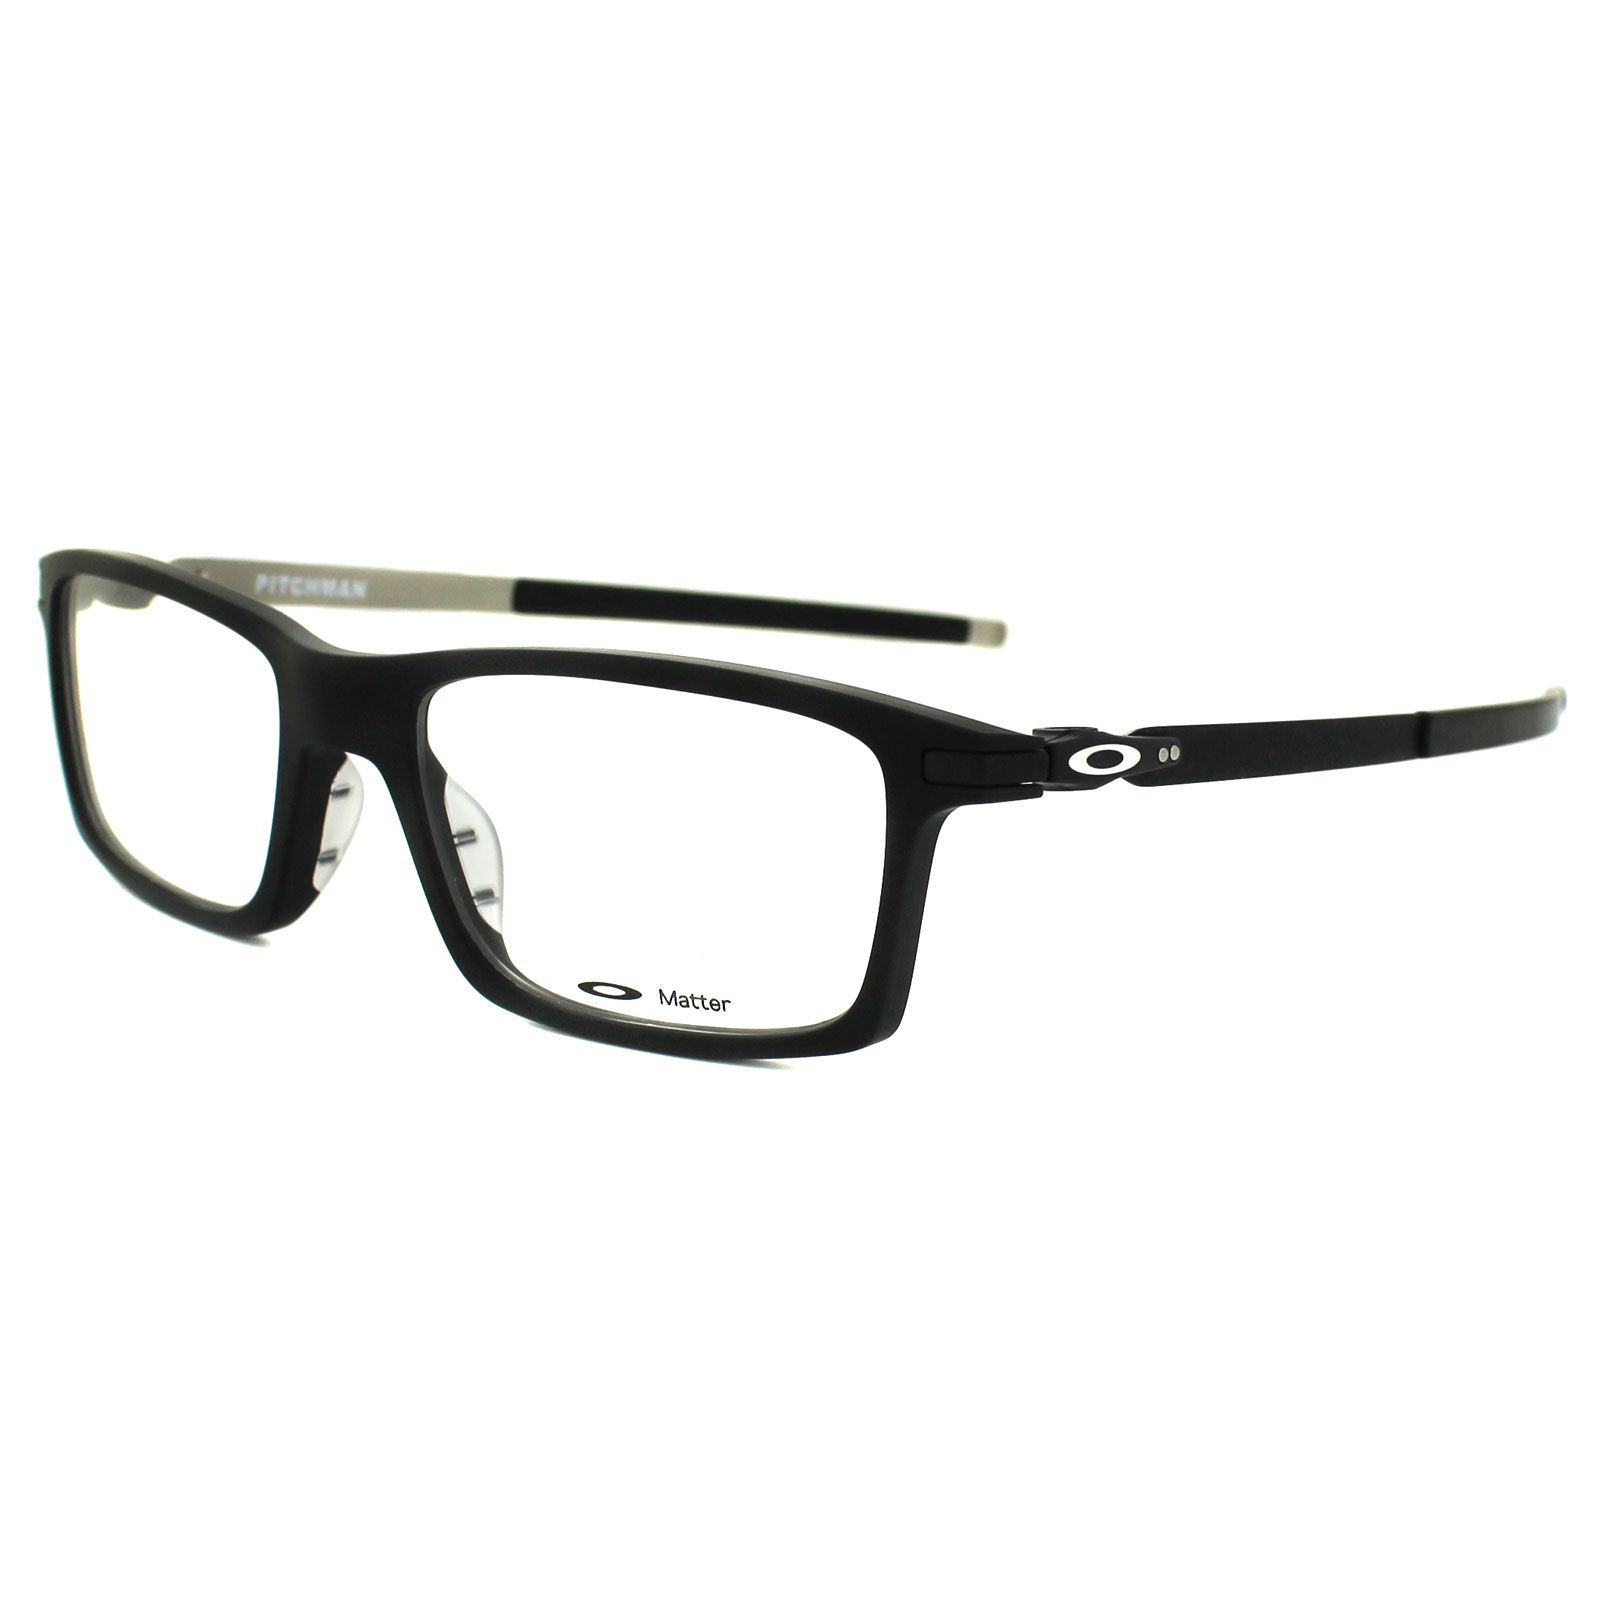 Pics Of Glasses Frame : Cheap Oakley Pitchman Glasses Frames - Discounted Sunglasses